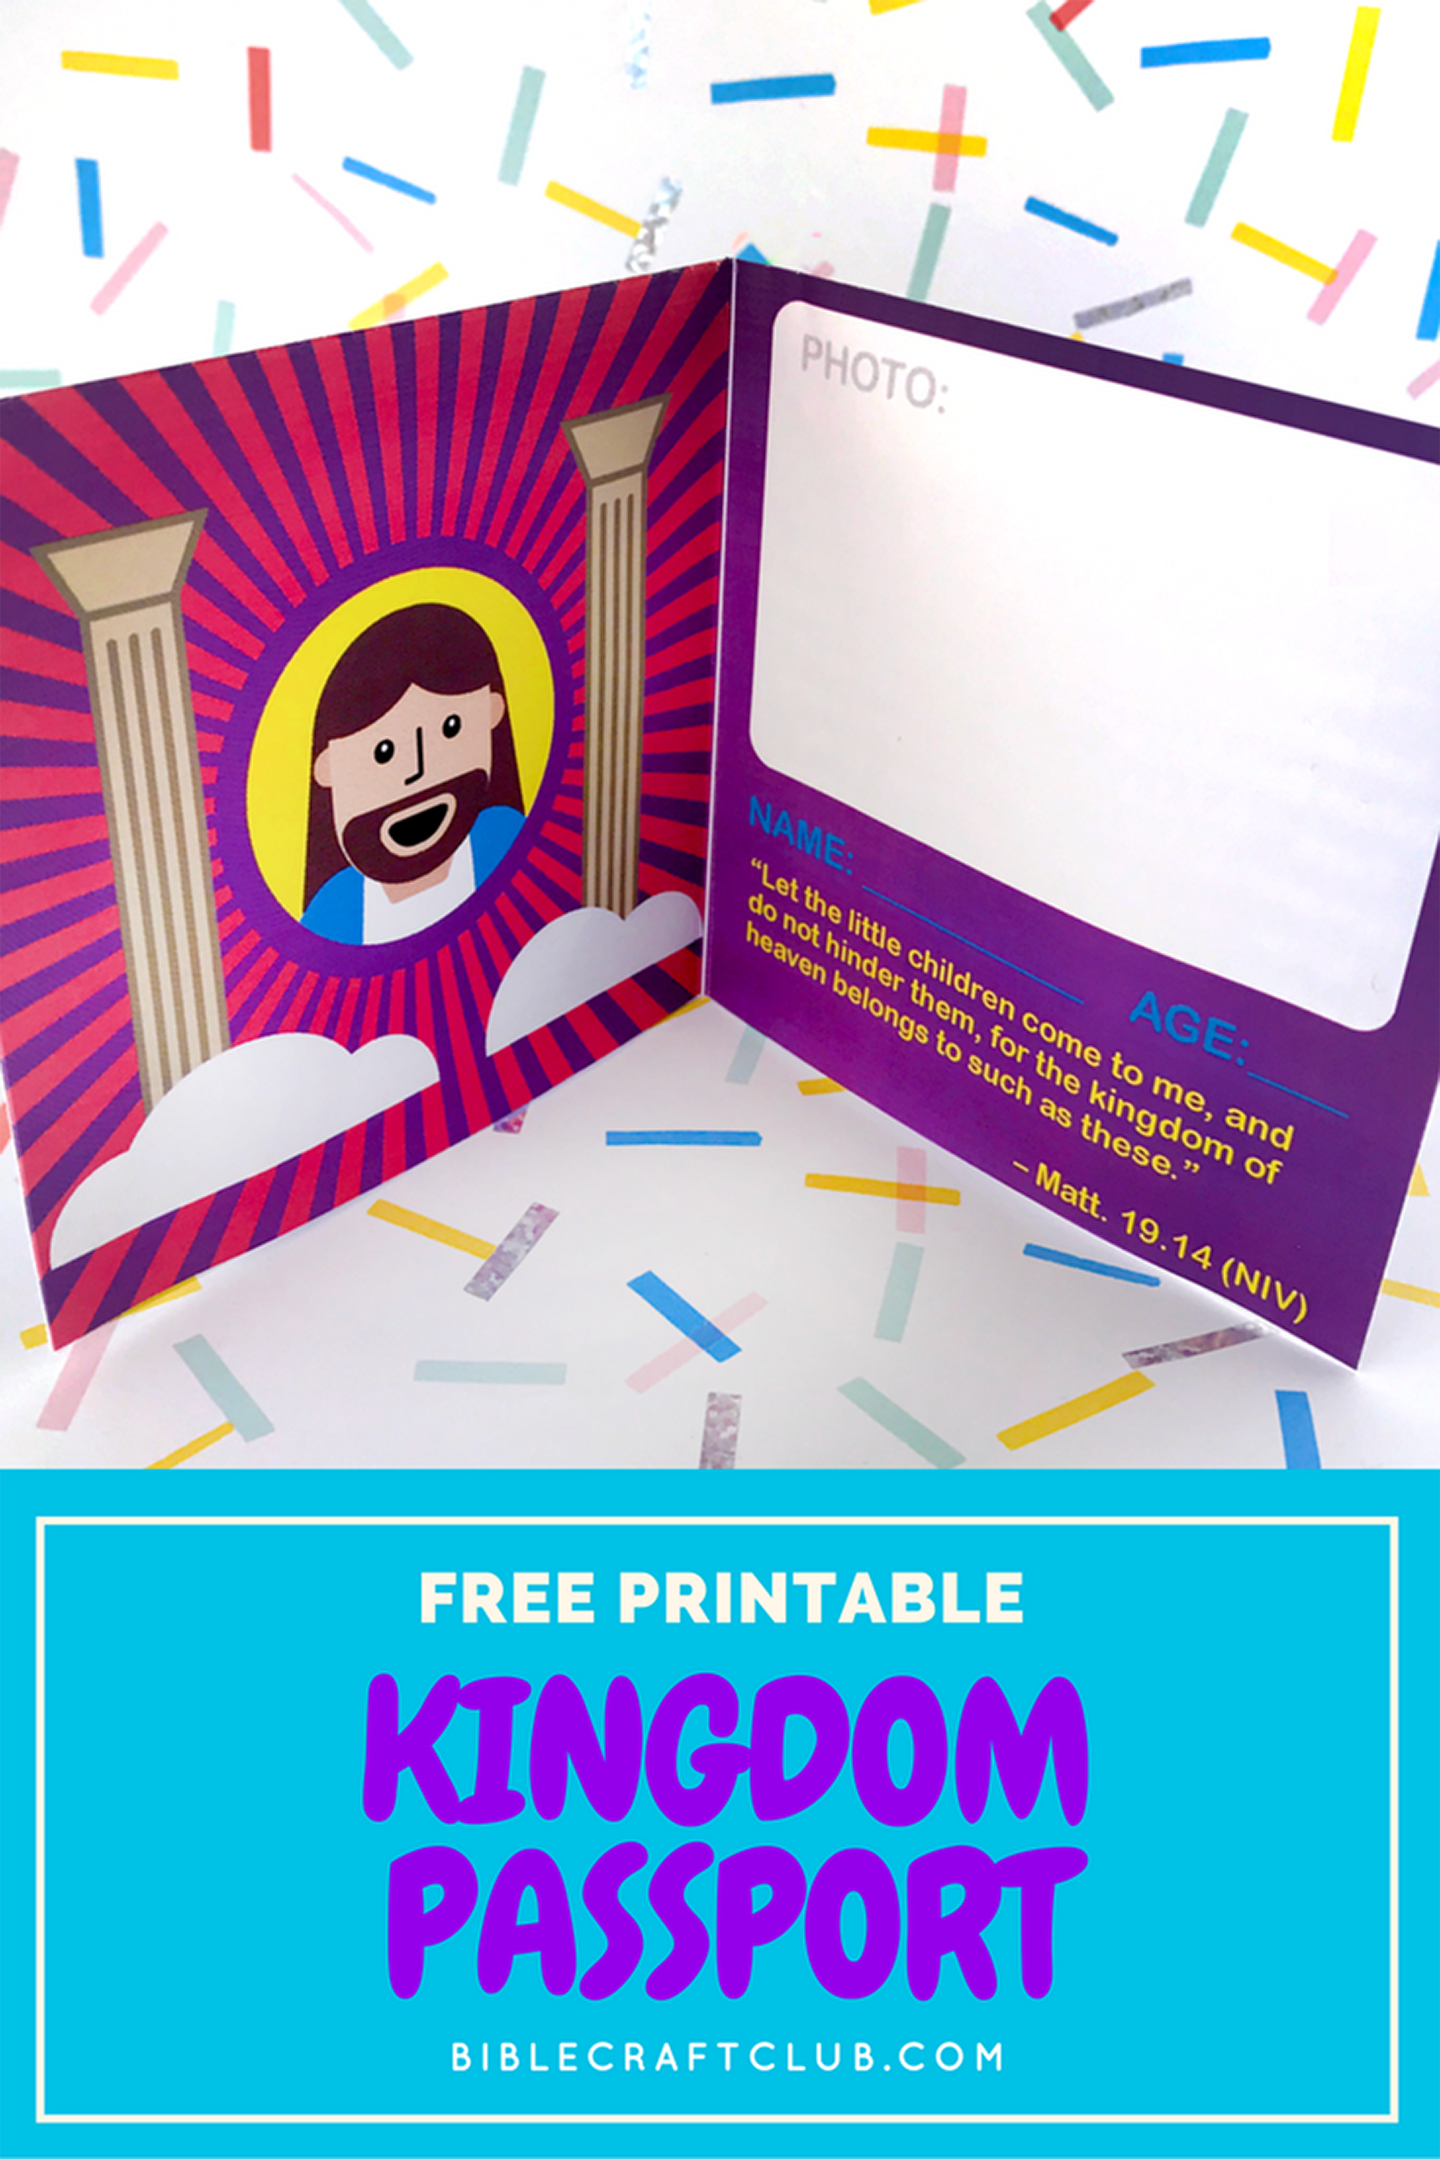 Kingdom Passport Craft Biblecraftclub Com Bible Crafts Faith